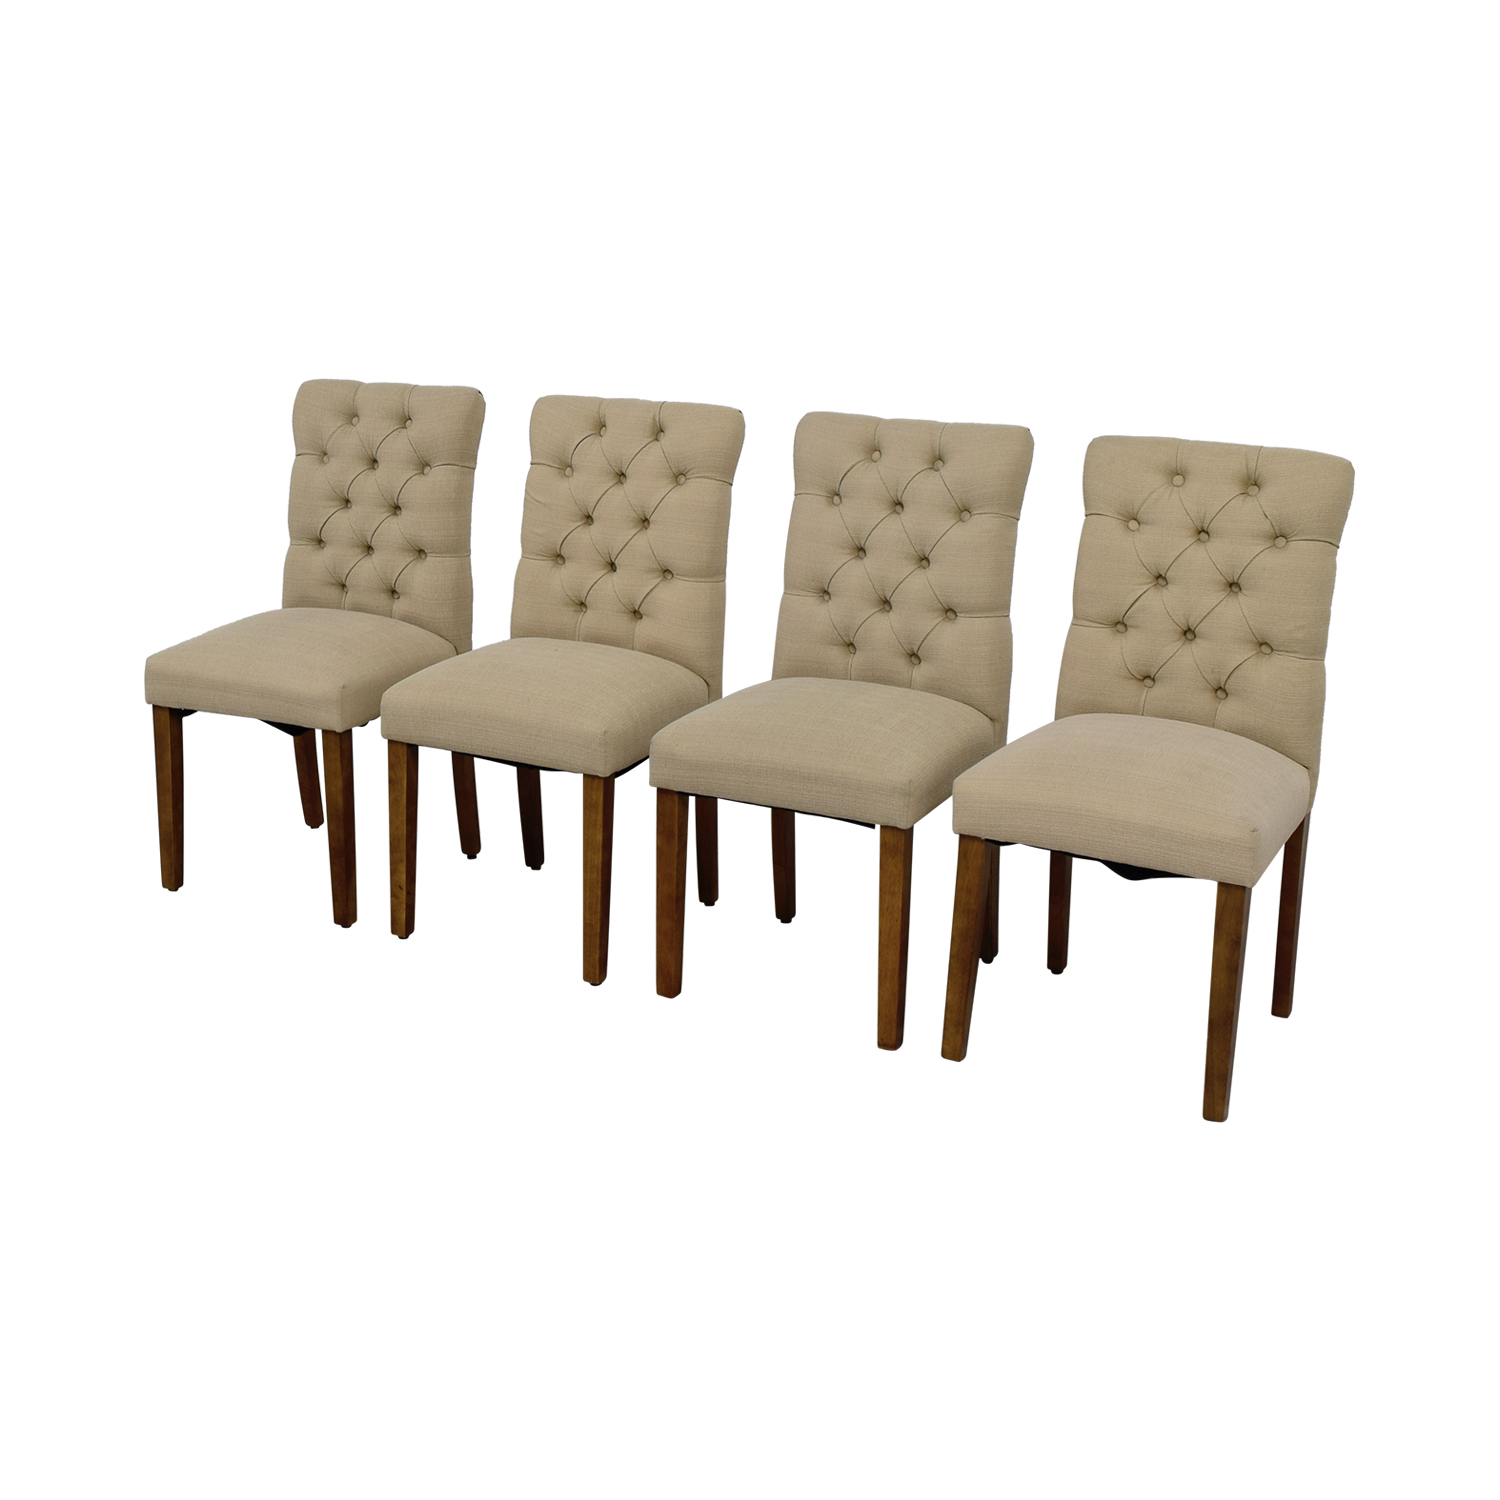 target chairs dining plus size folding chair 67 off brookline threshold tan tufted